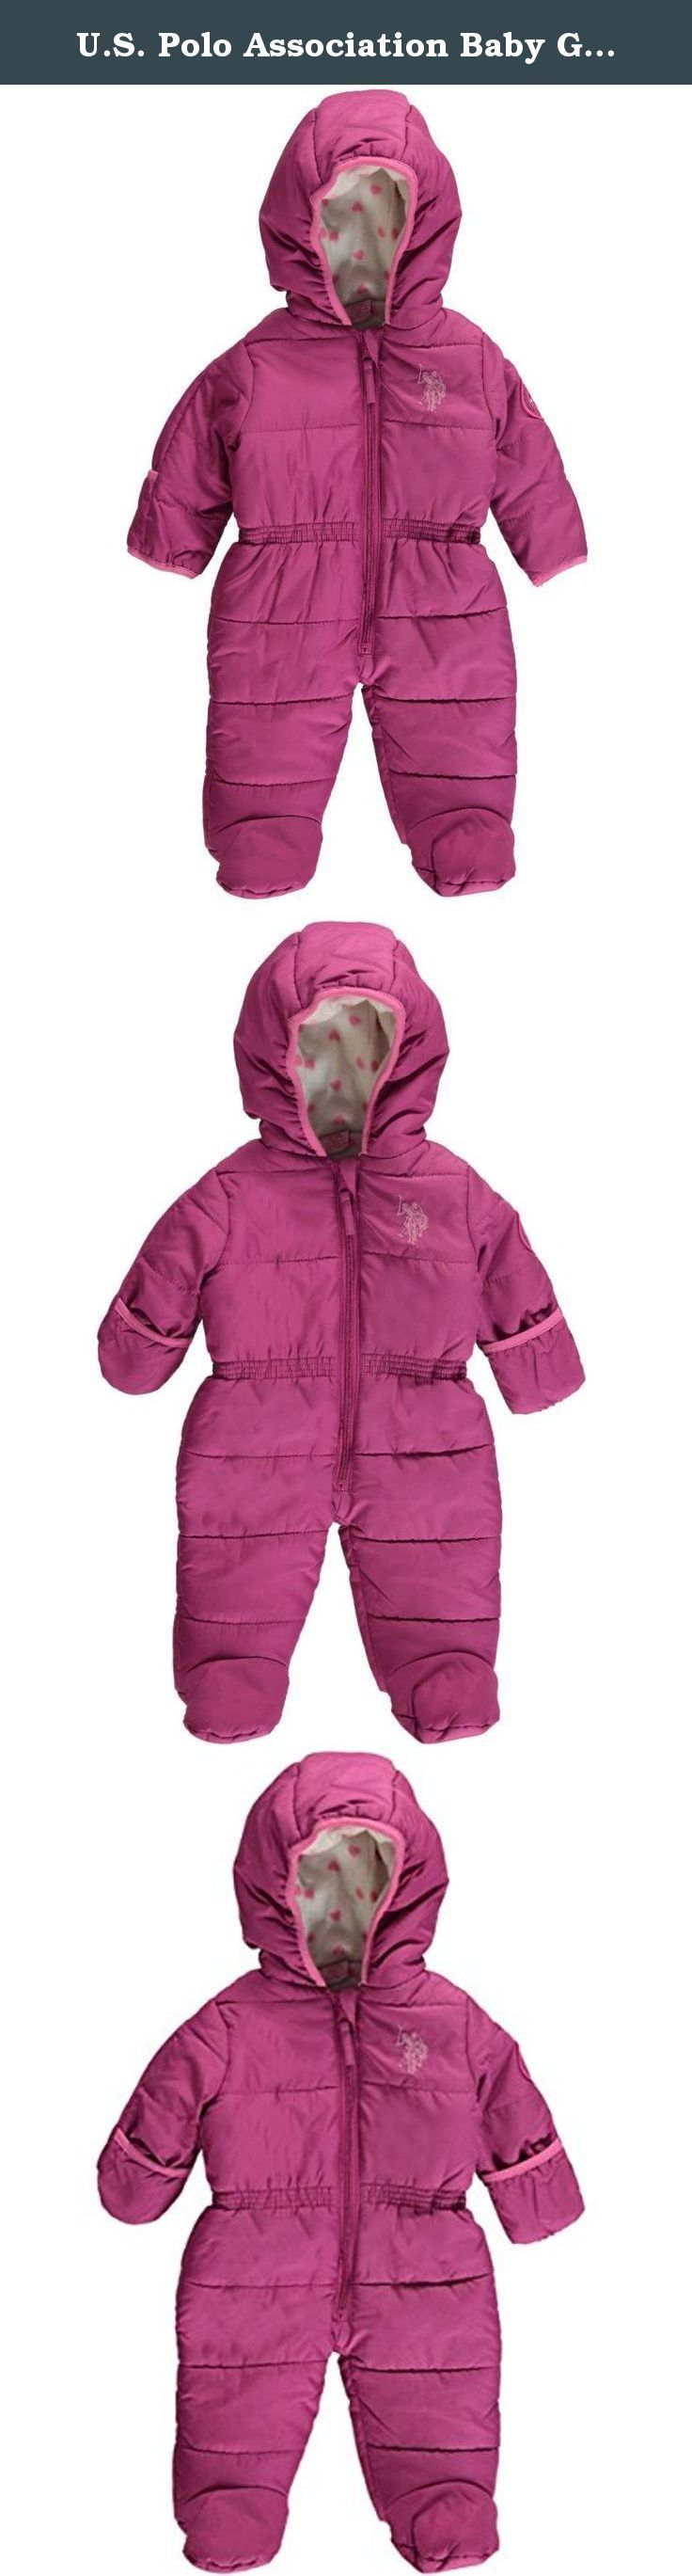 """U.S. Polo Association Baby Girls' """"Thick Ice"""" 1-Piece Snowsuit - Festival Pink, 6/9 Months. This U.S. Polo Assn. snowsuit comes with a weather-resistant exterior, fleece lining, and extra insulation for all-winter wear. Zipper down the front, foldover mitts, feeties. 100% Polyester Machine Wash Cold Imported."""